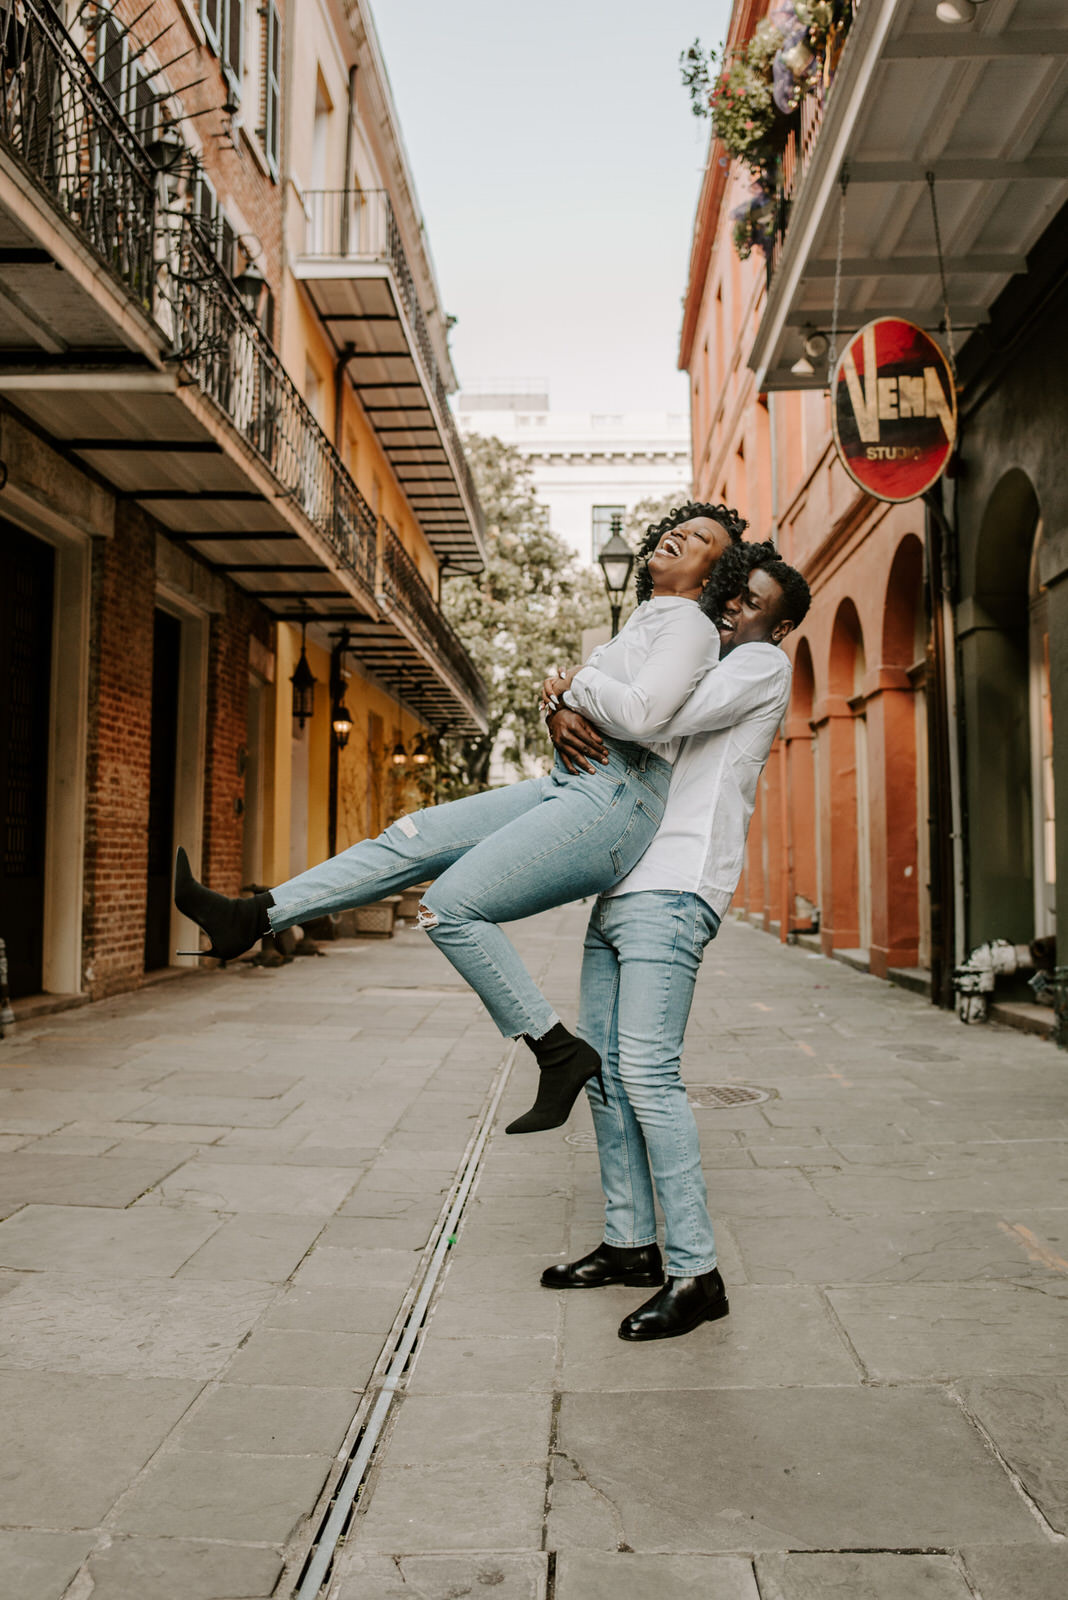 New Orleans Lovers by Hope Allison